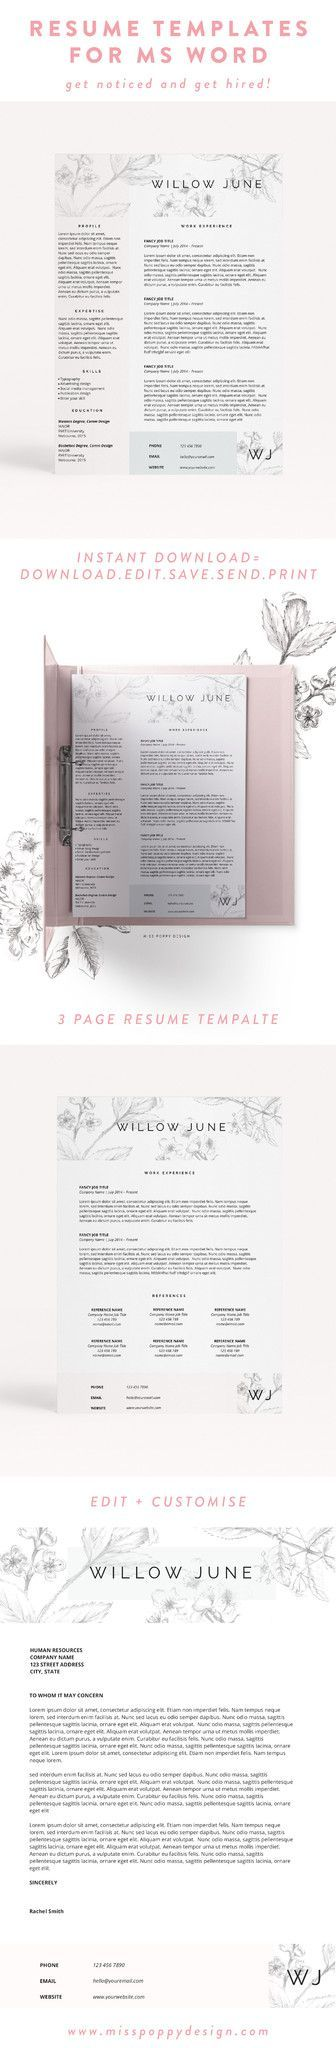 Best 25+ Resume maker professional ideas on Pinterest Resume - instant resume builder